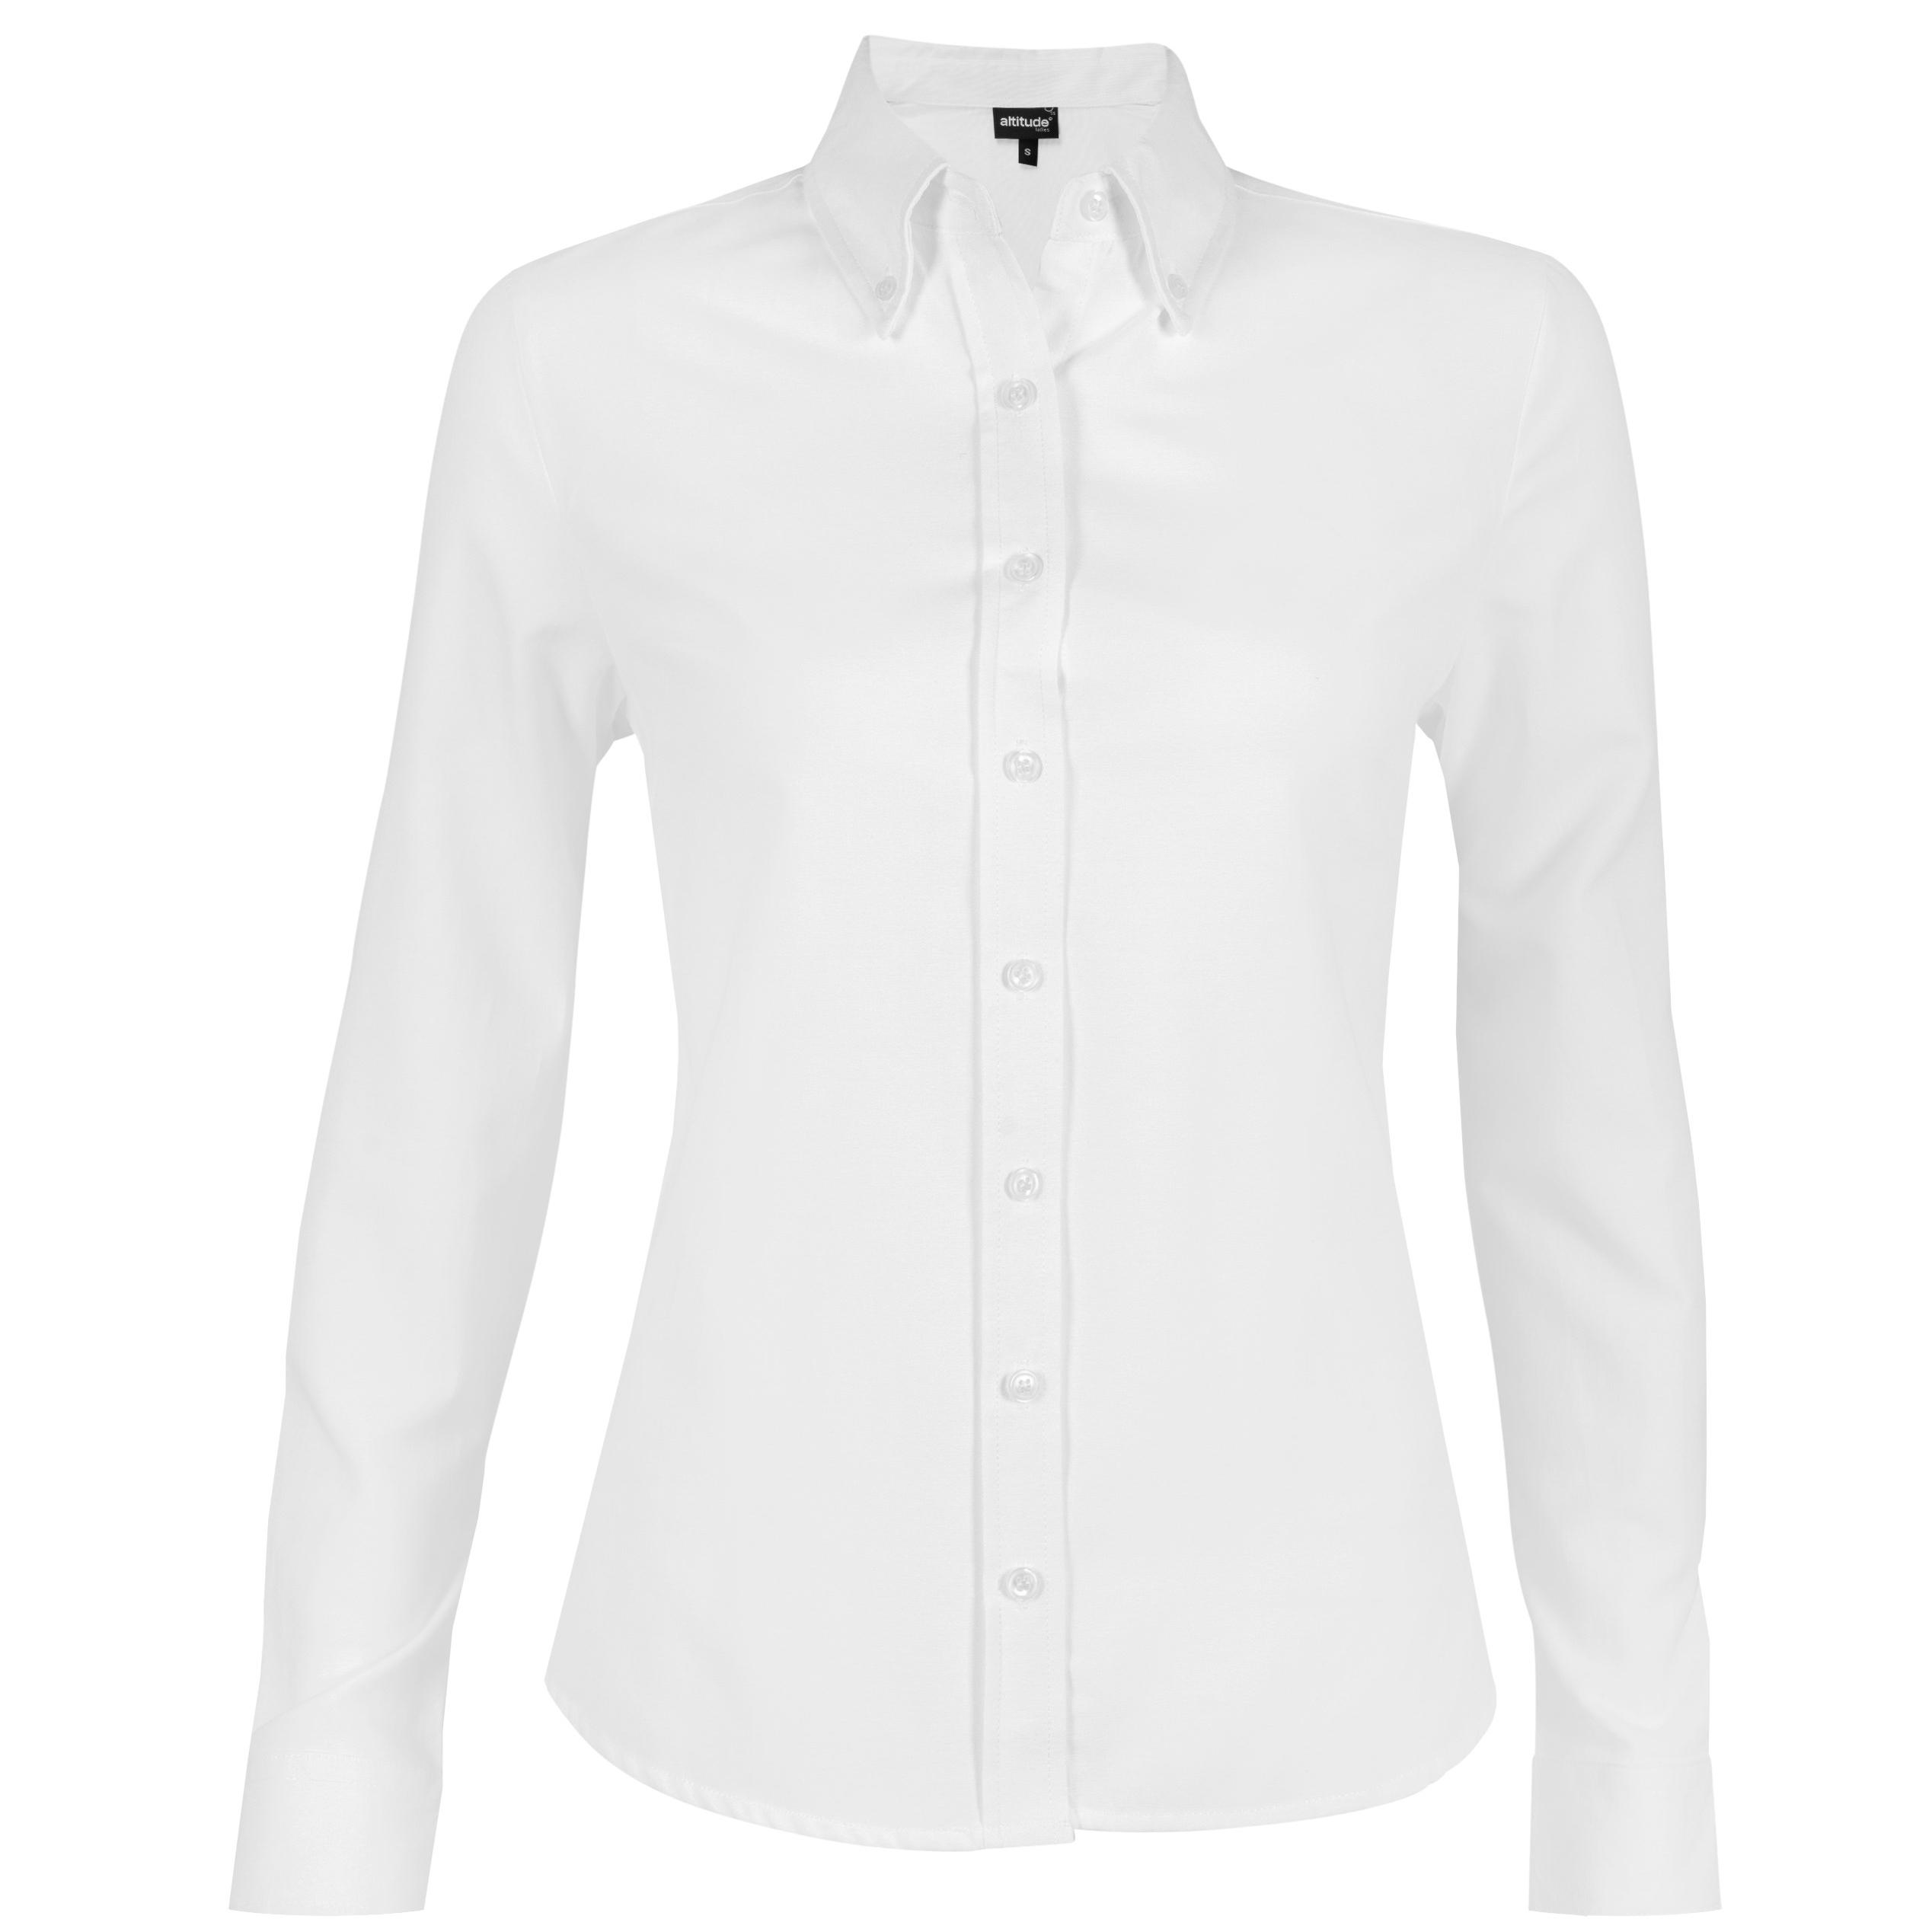 Ladies Long Sleeve Oxford Shirt -white Only